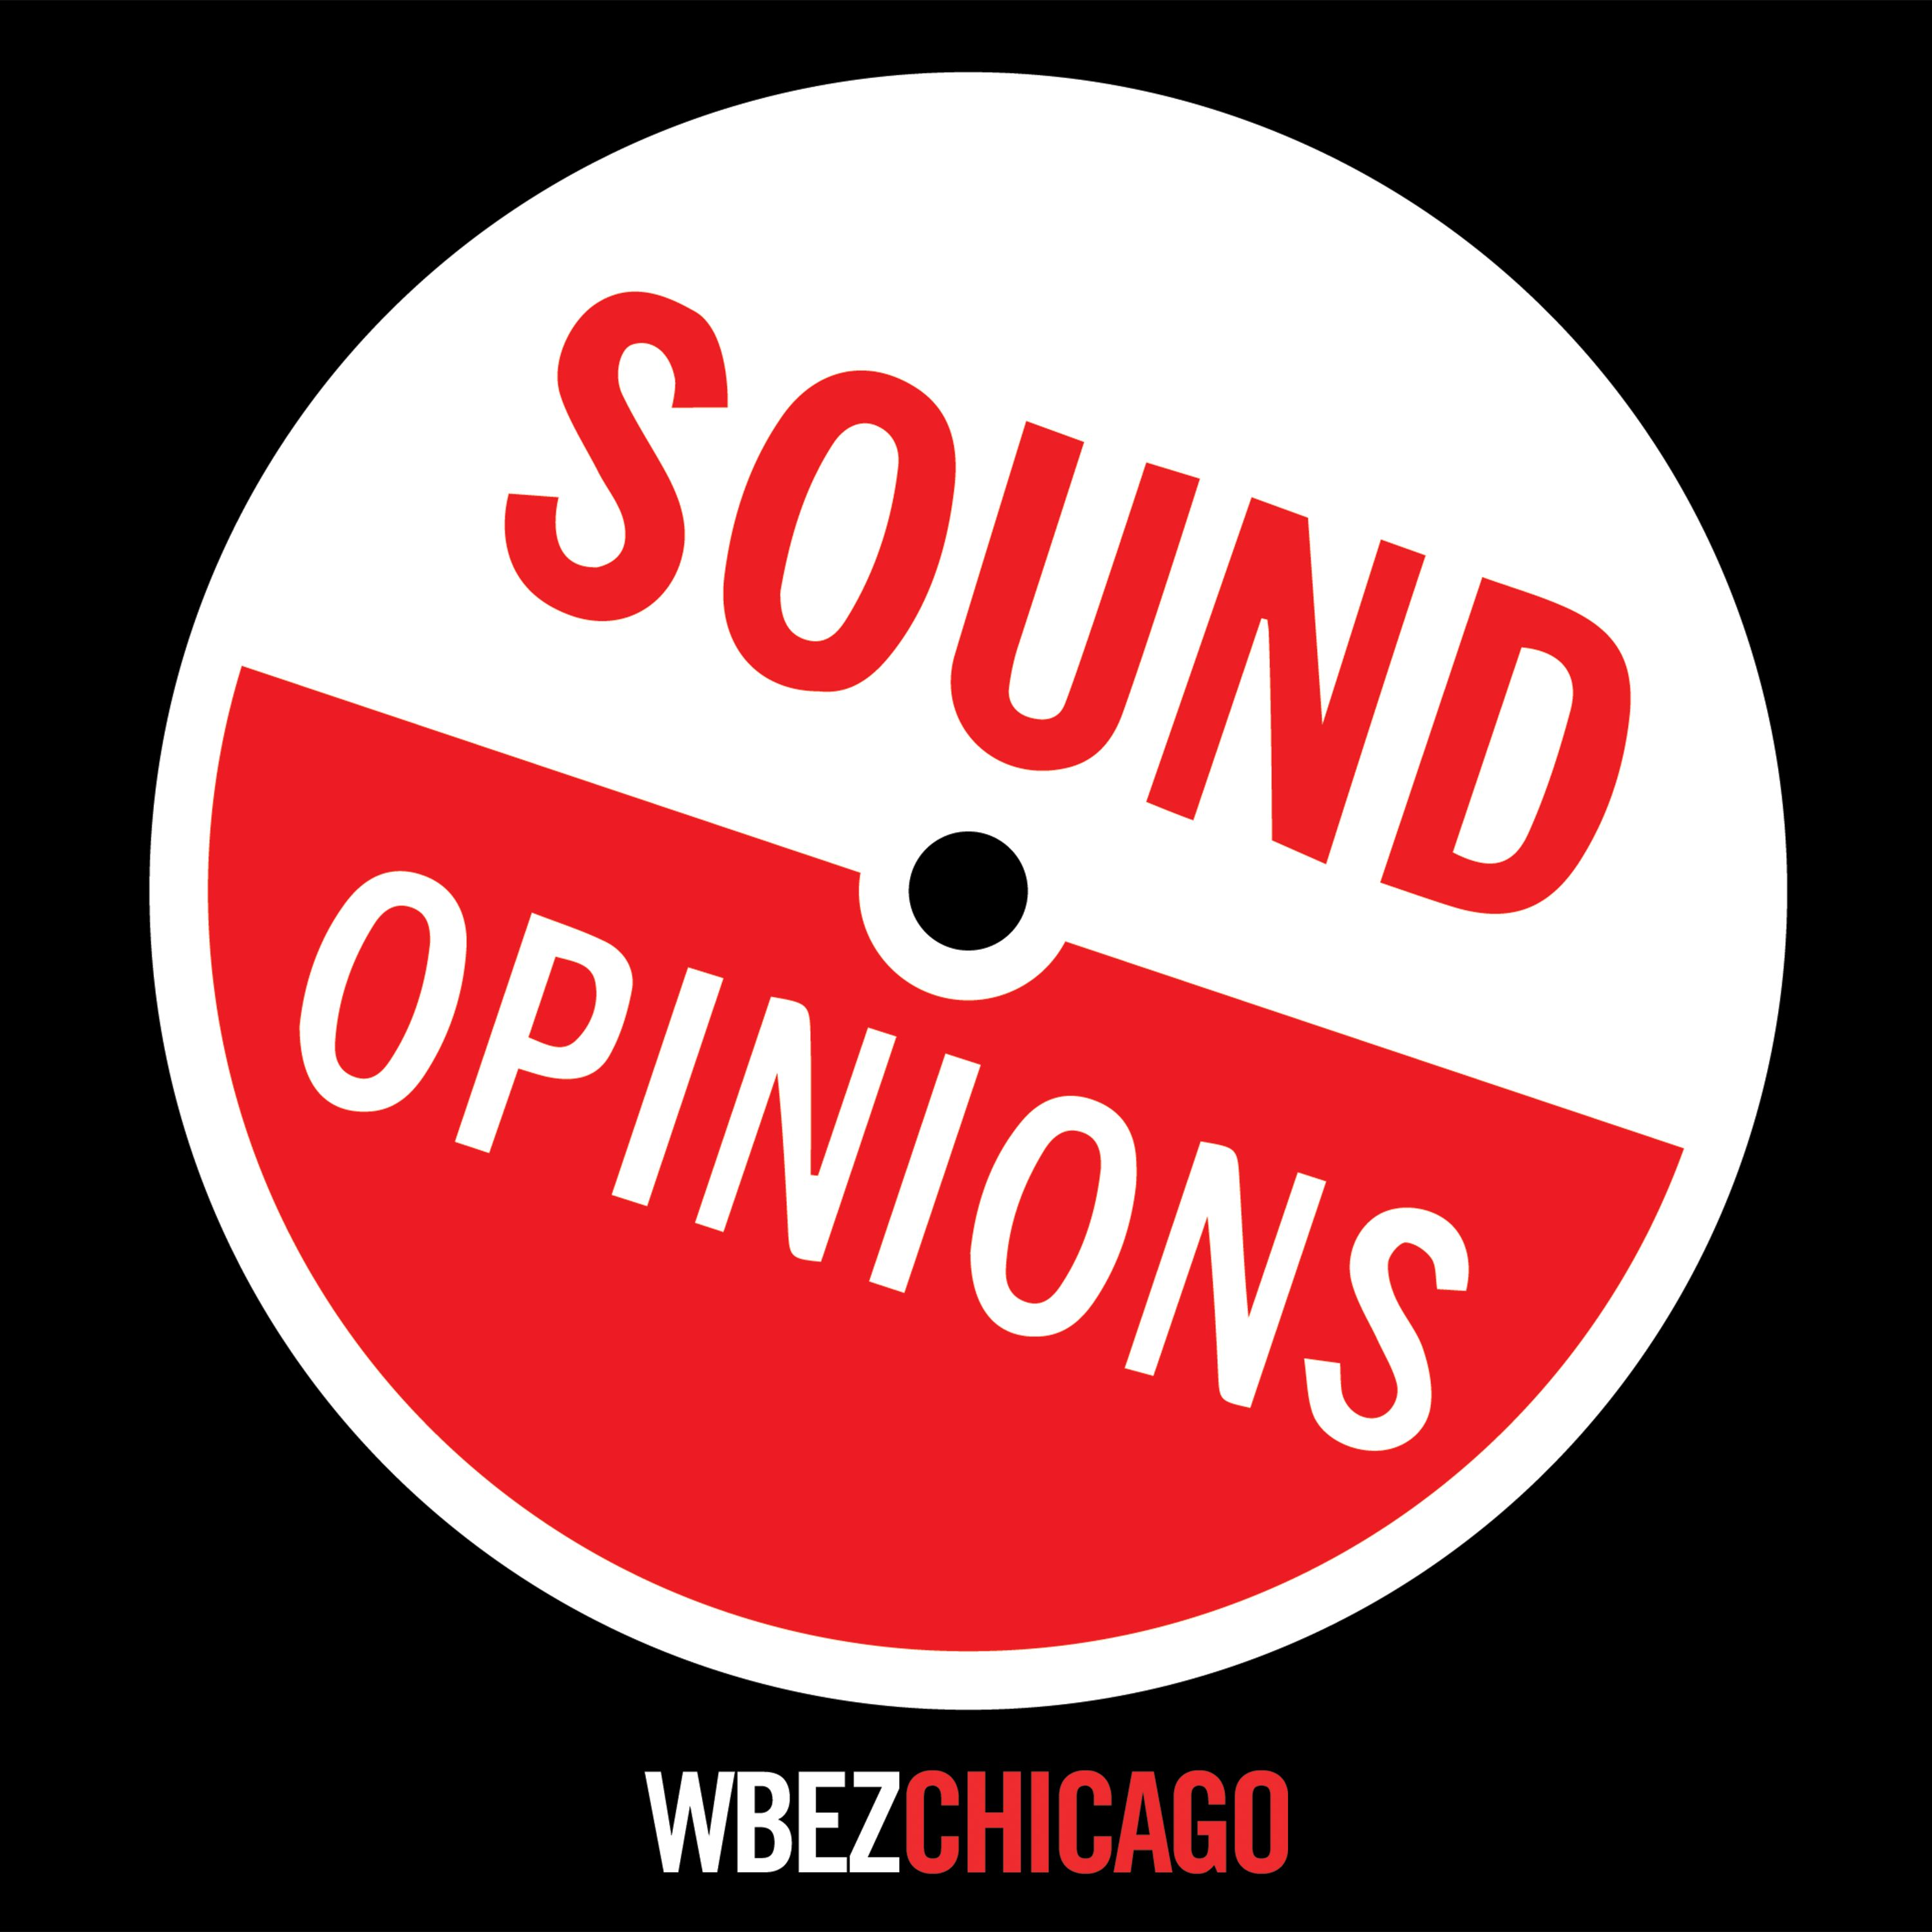 #759 Cover Songs, Opinions on Jehnny Beth & Remembering Jimmy Cobb